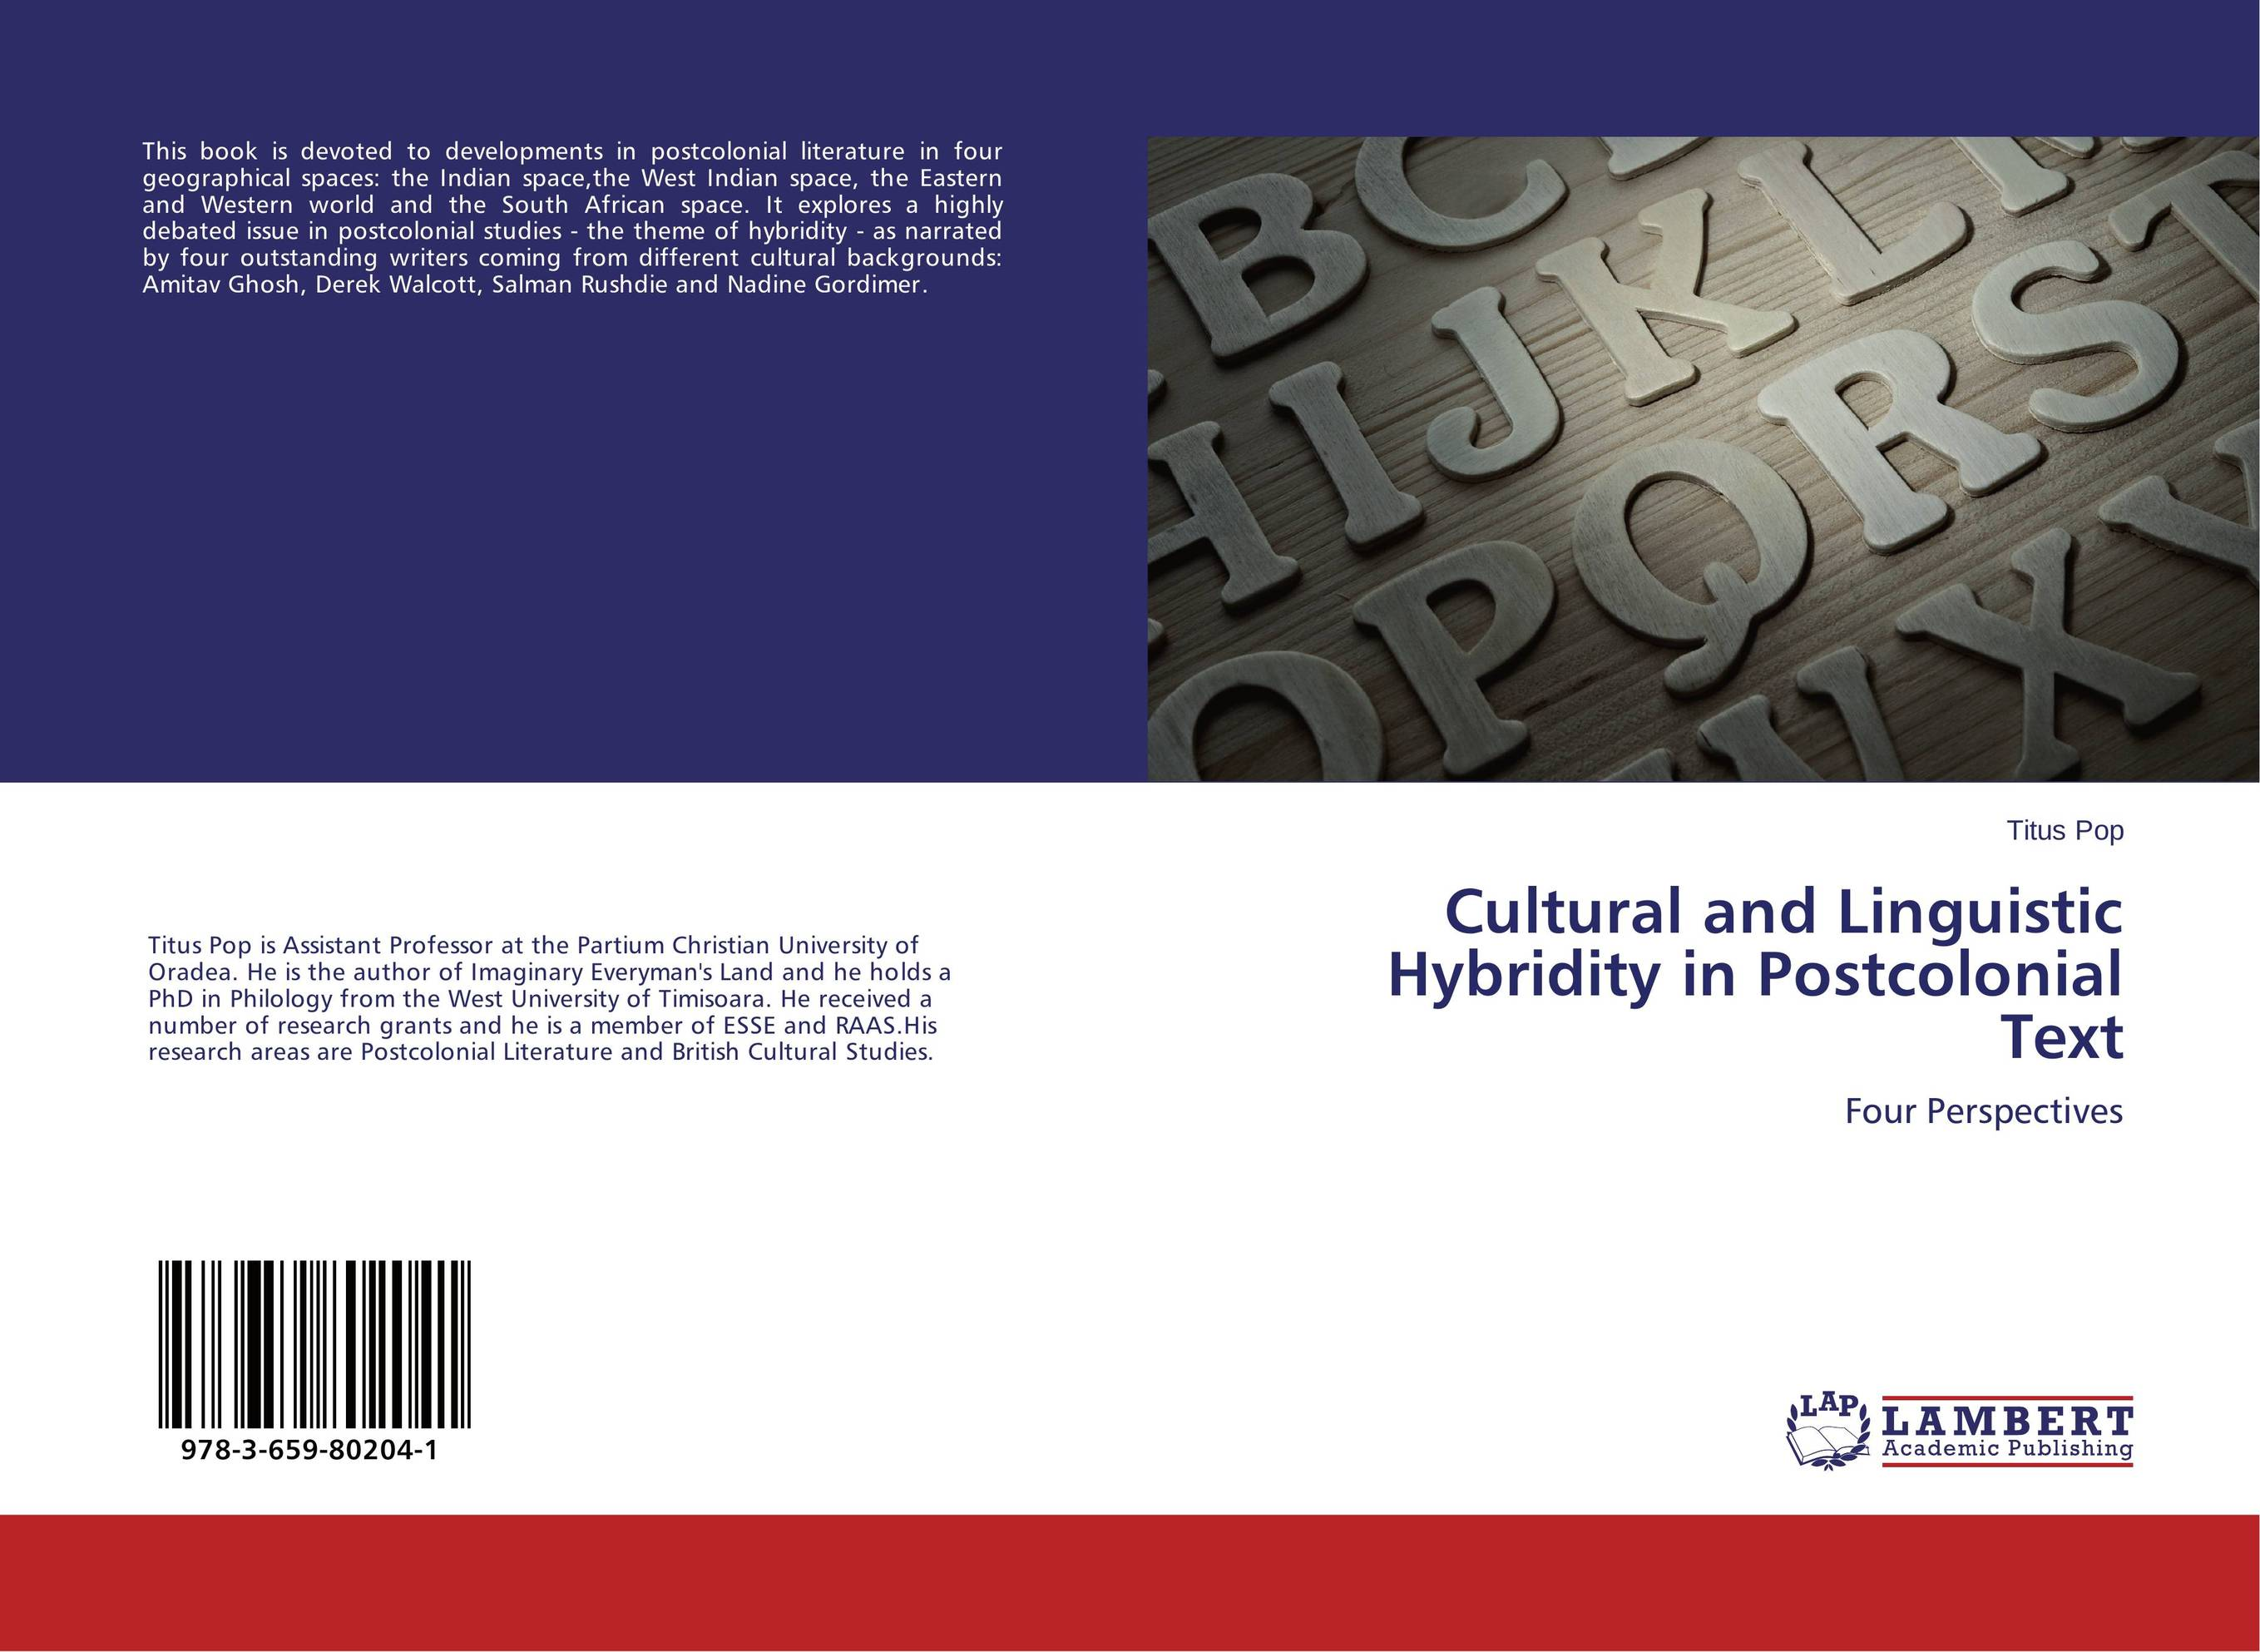 Cultural and Linguistic Hybridity in Postcolonial Text cultural and linguistic hybridity in postcolonial text